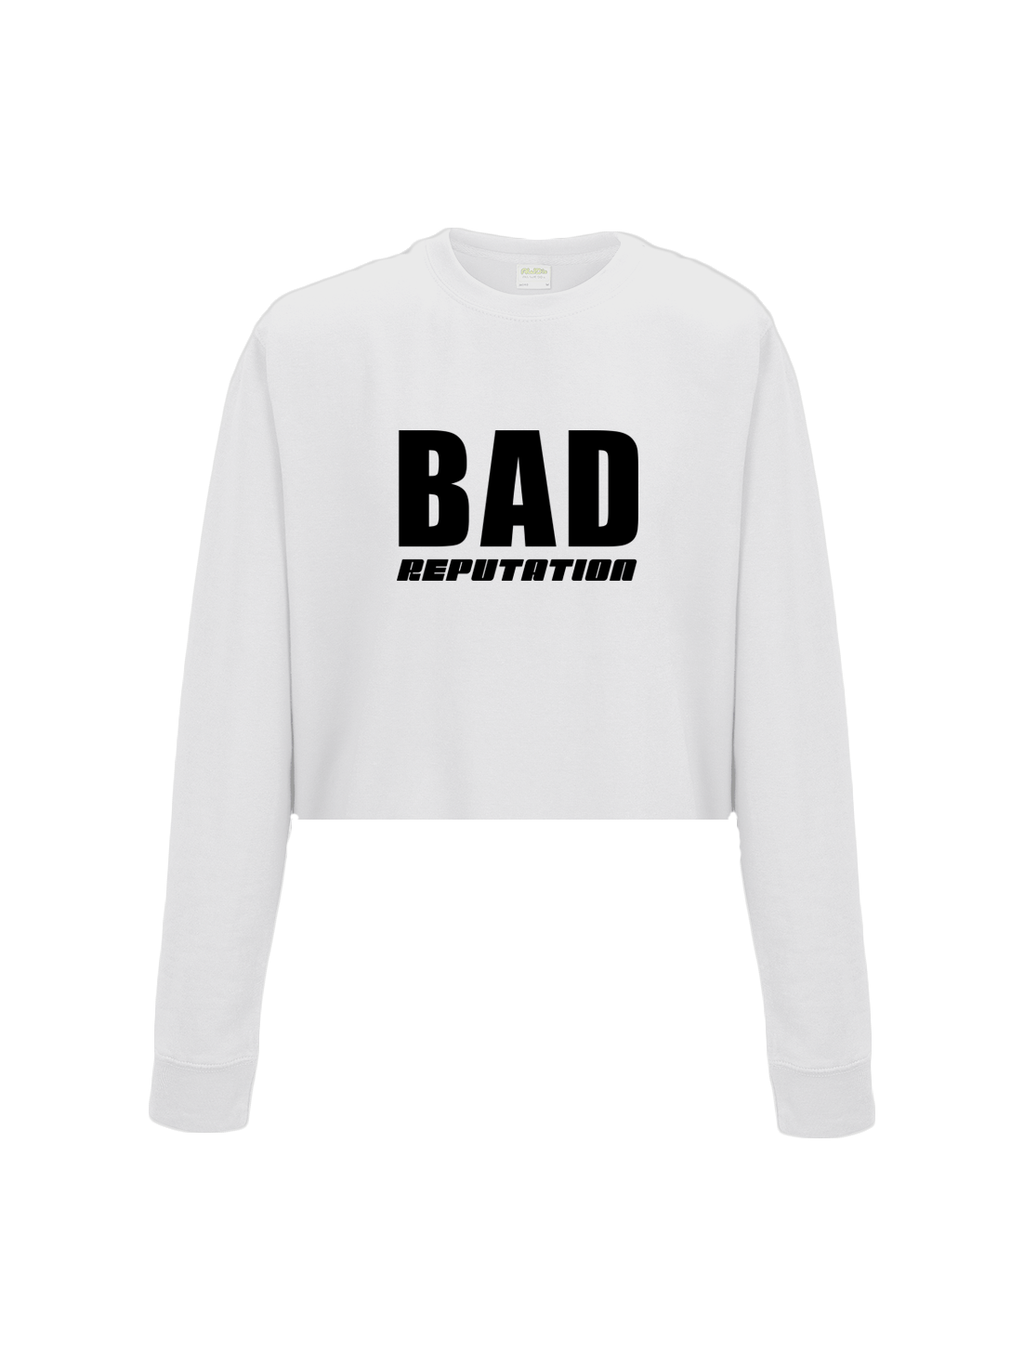 BAD REPUTATION cropped sweatshirt